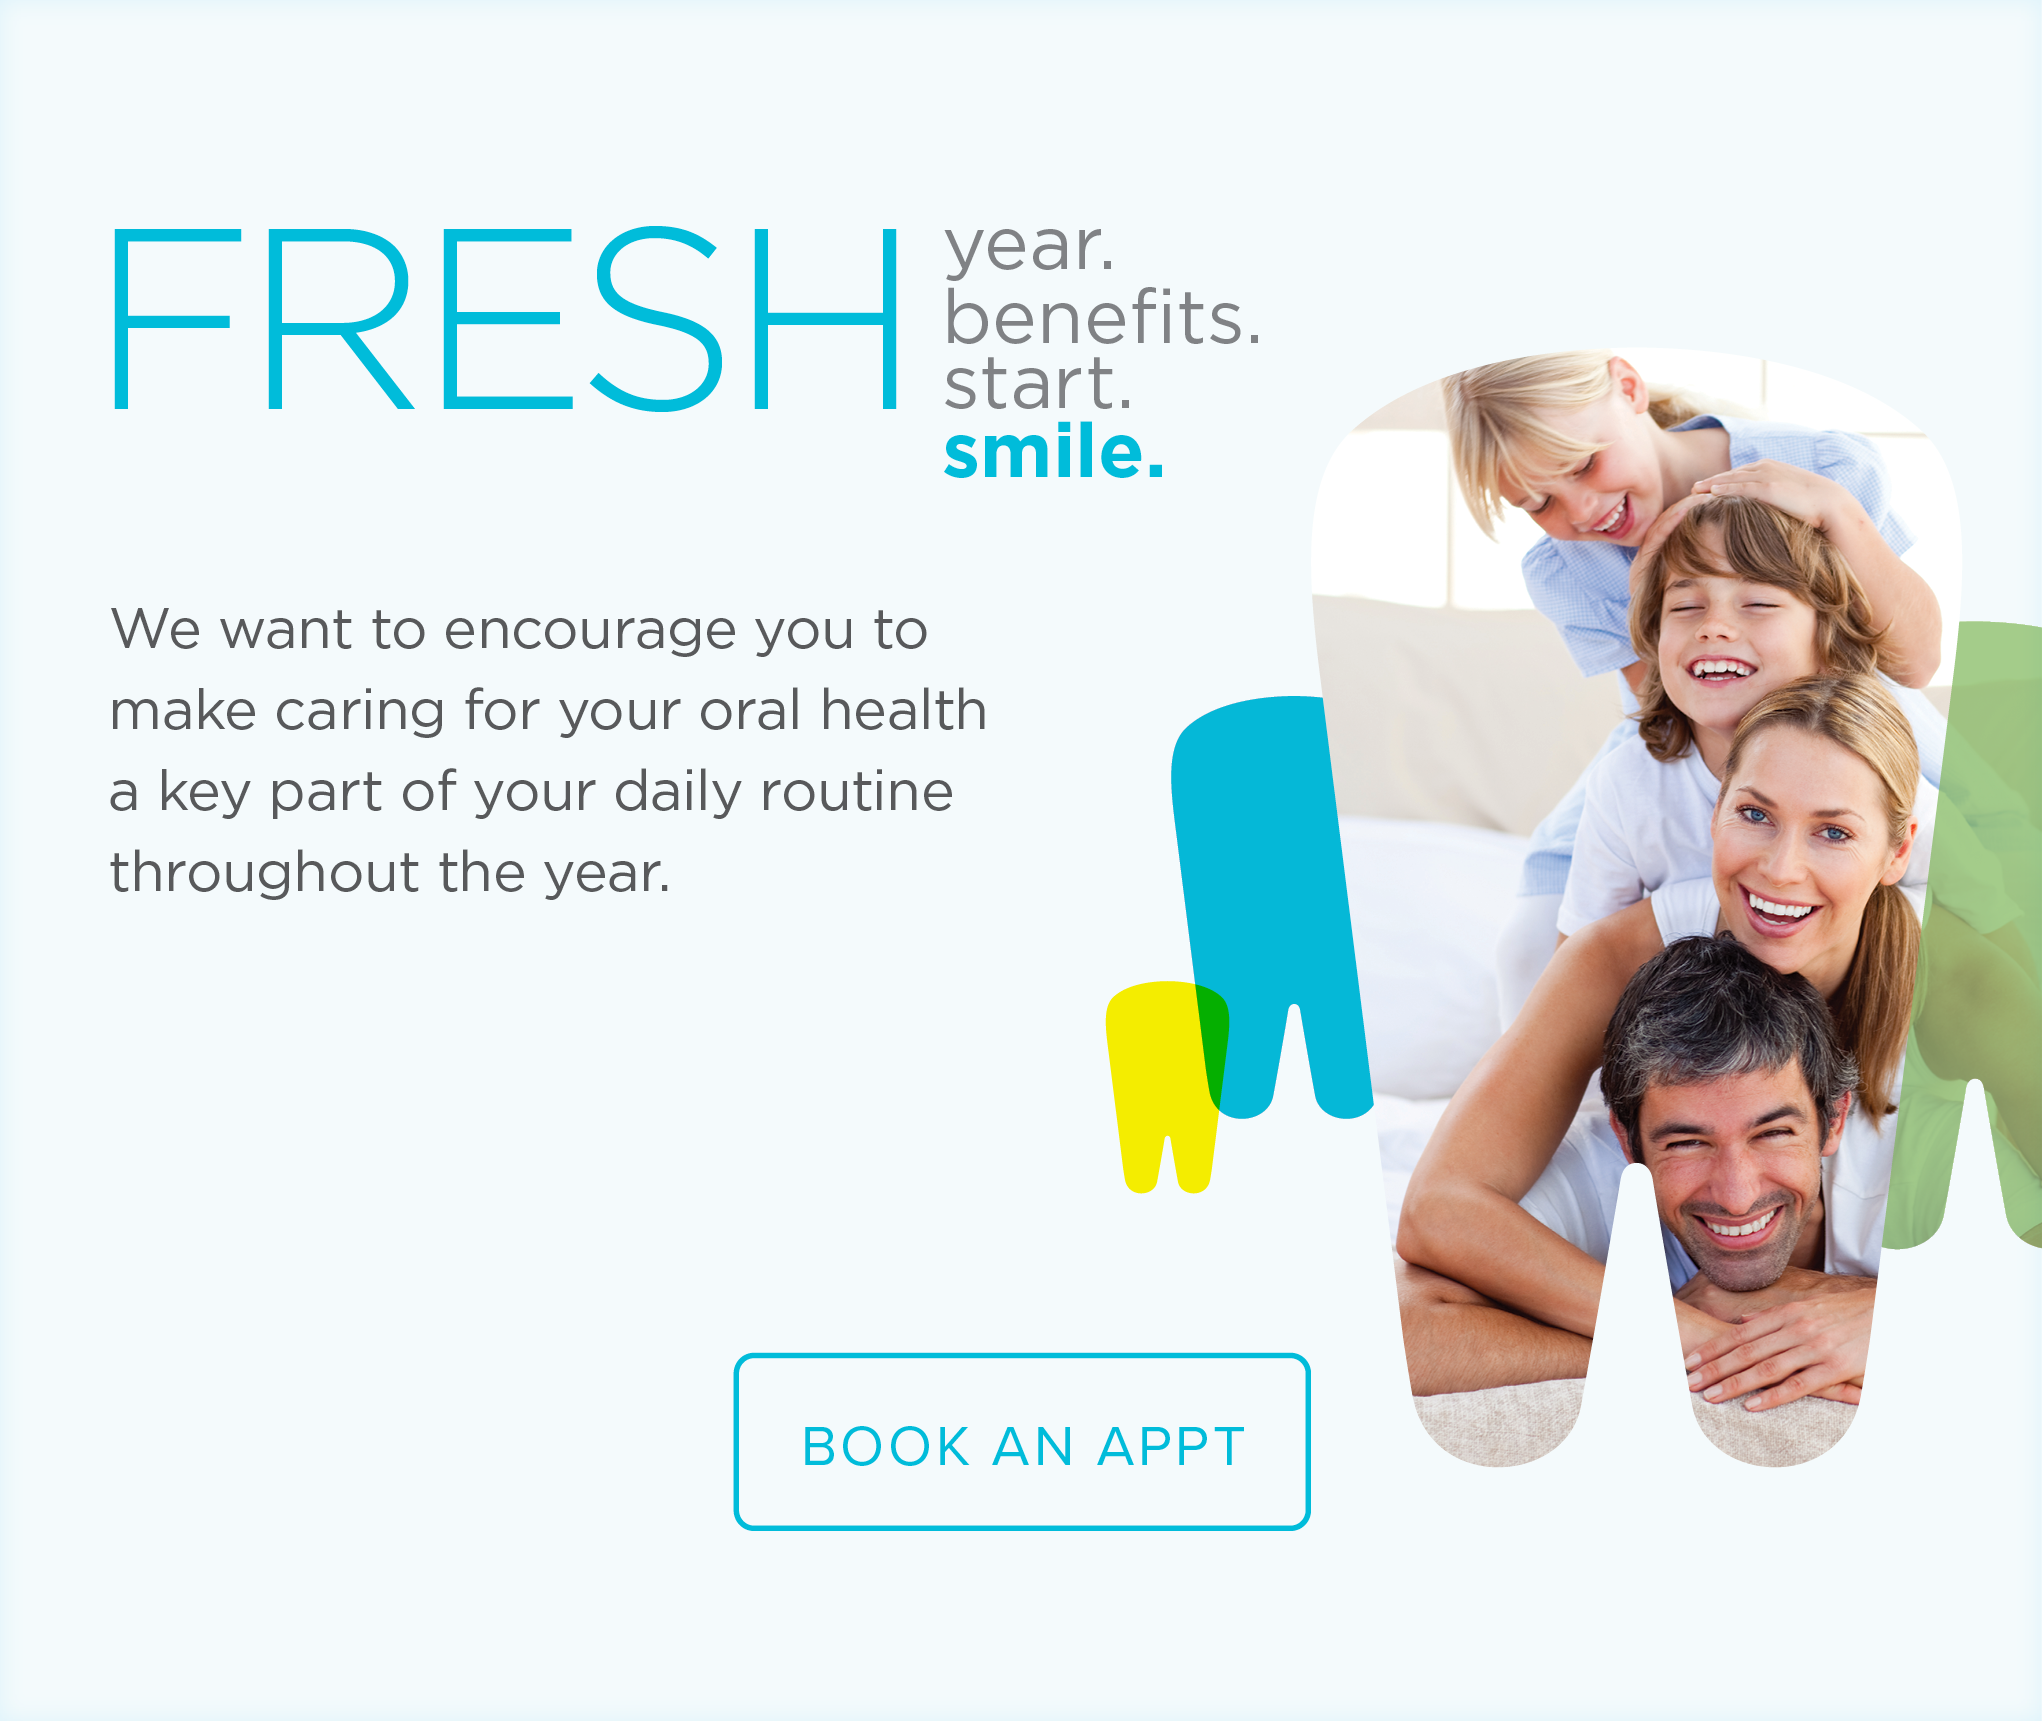 Sugar Land Dental Group and Orthodontics - Make the Most of Your Benefits